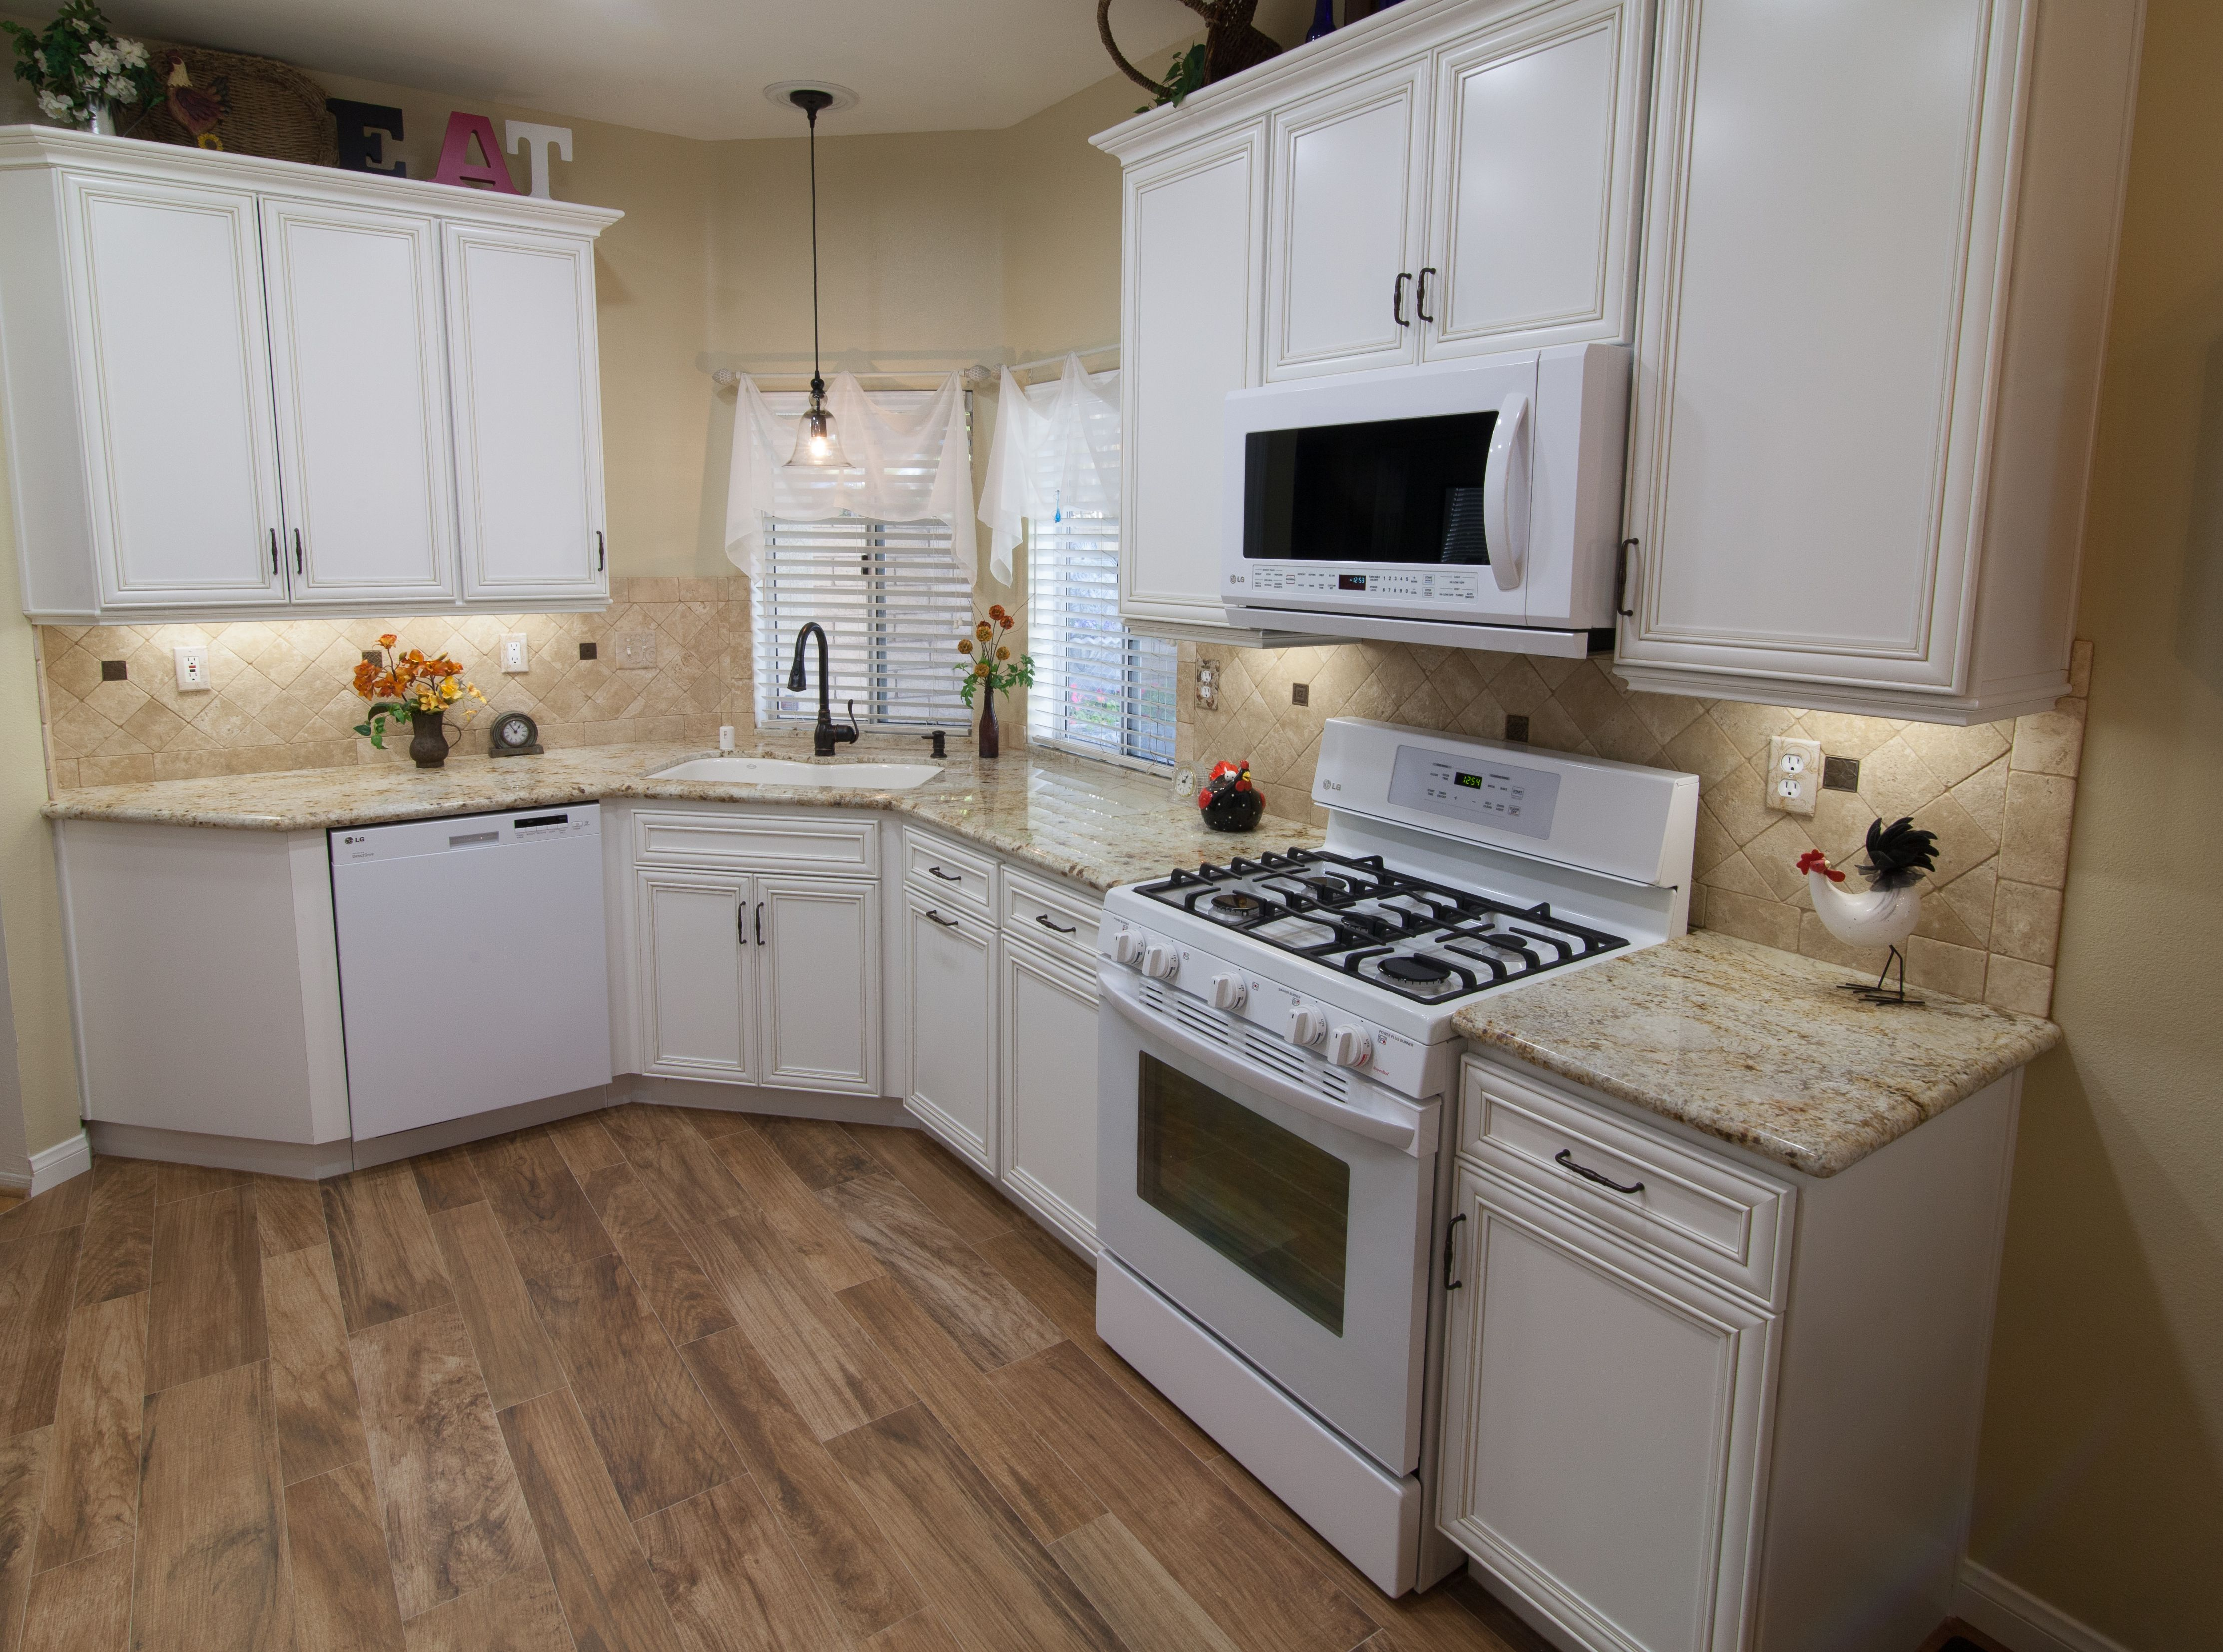 Kitchen Remodel Done By Kitchens Etc. Of Ventura County. Www.kitetc.com